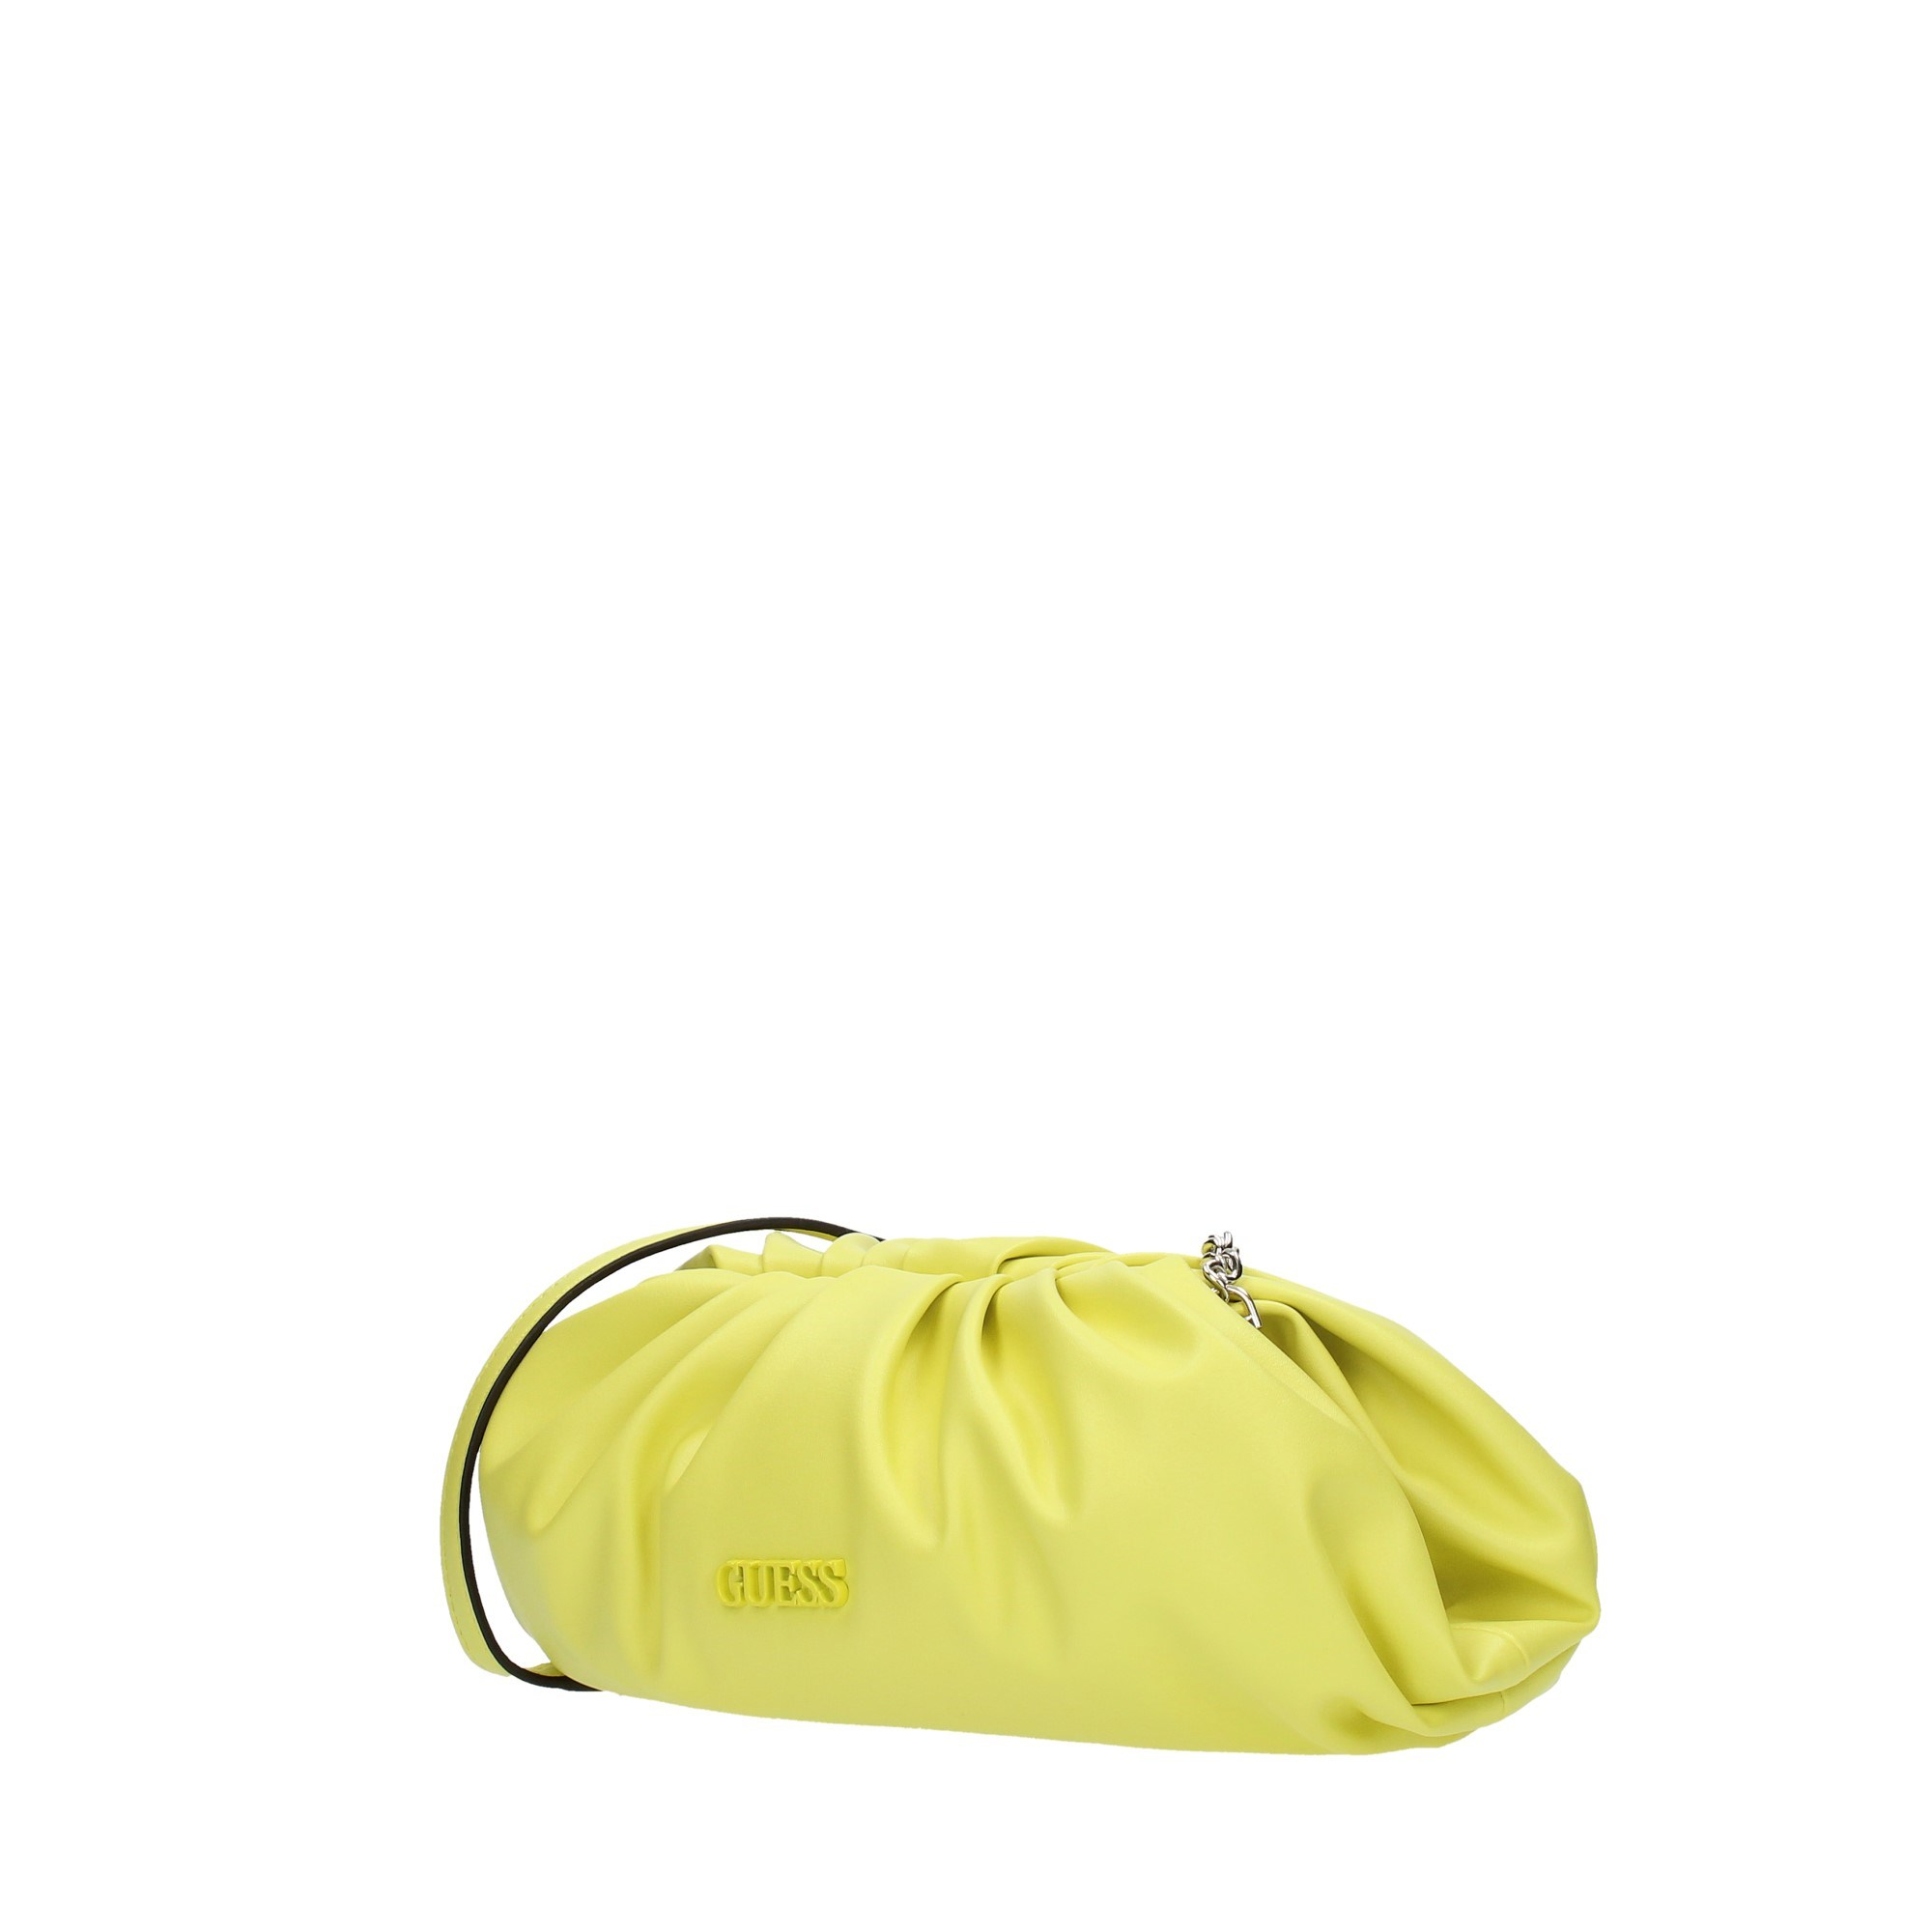 Guess Borse Accessories Women Shoulder Bags Yellow HWVG81/09260